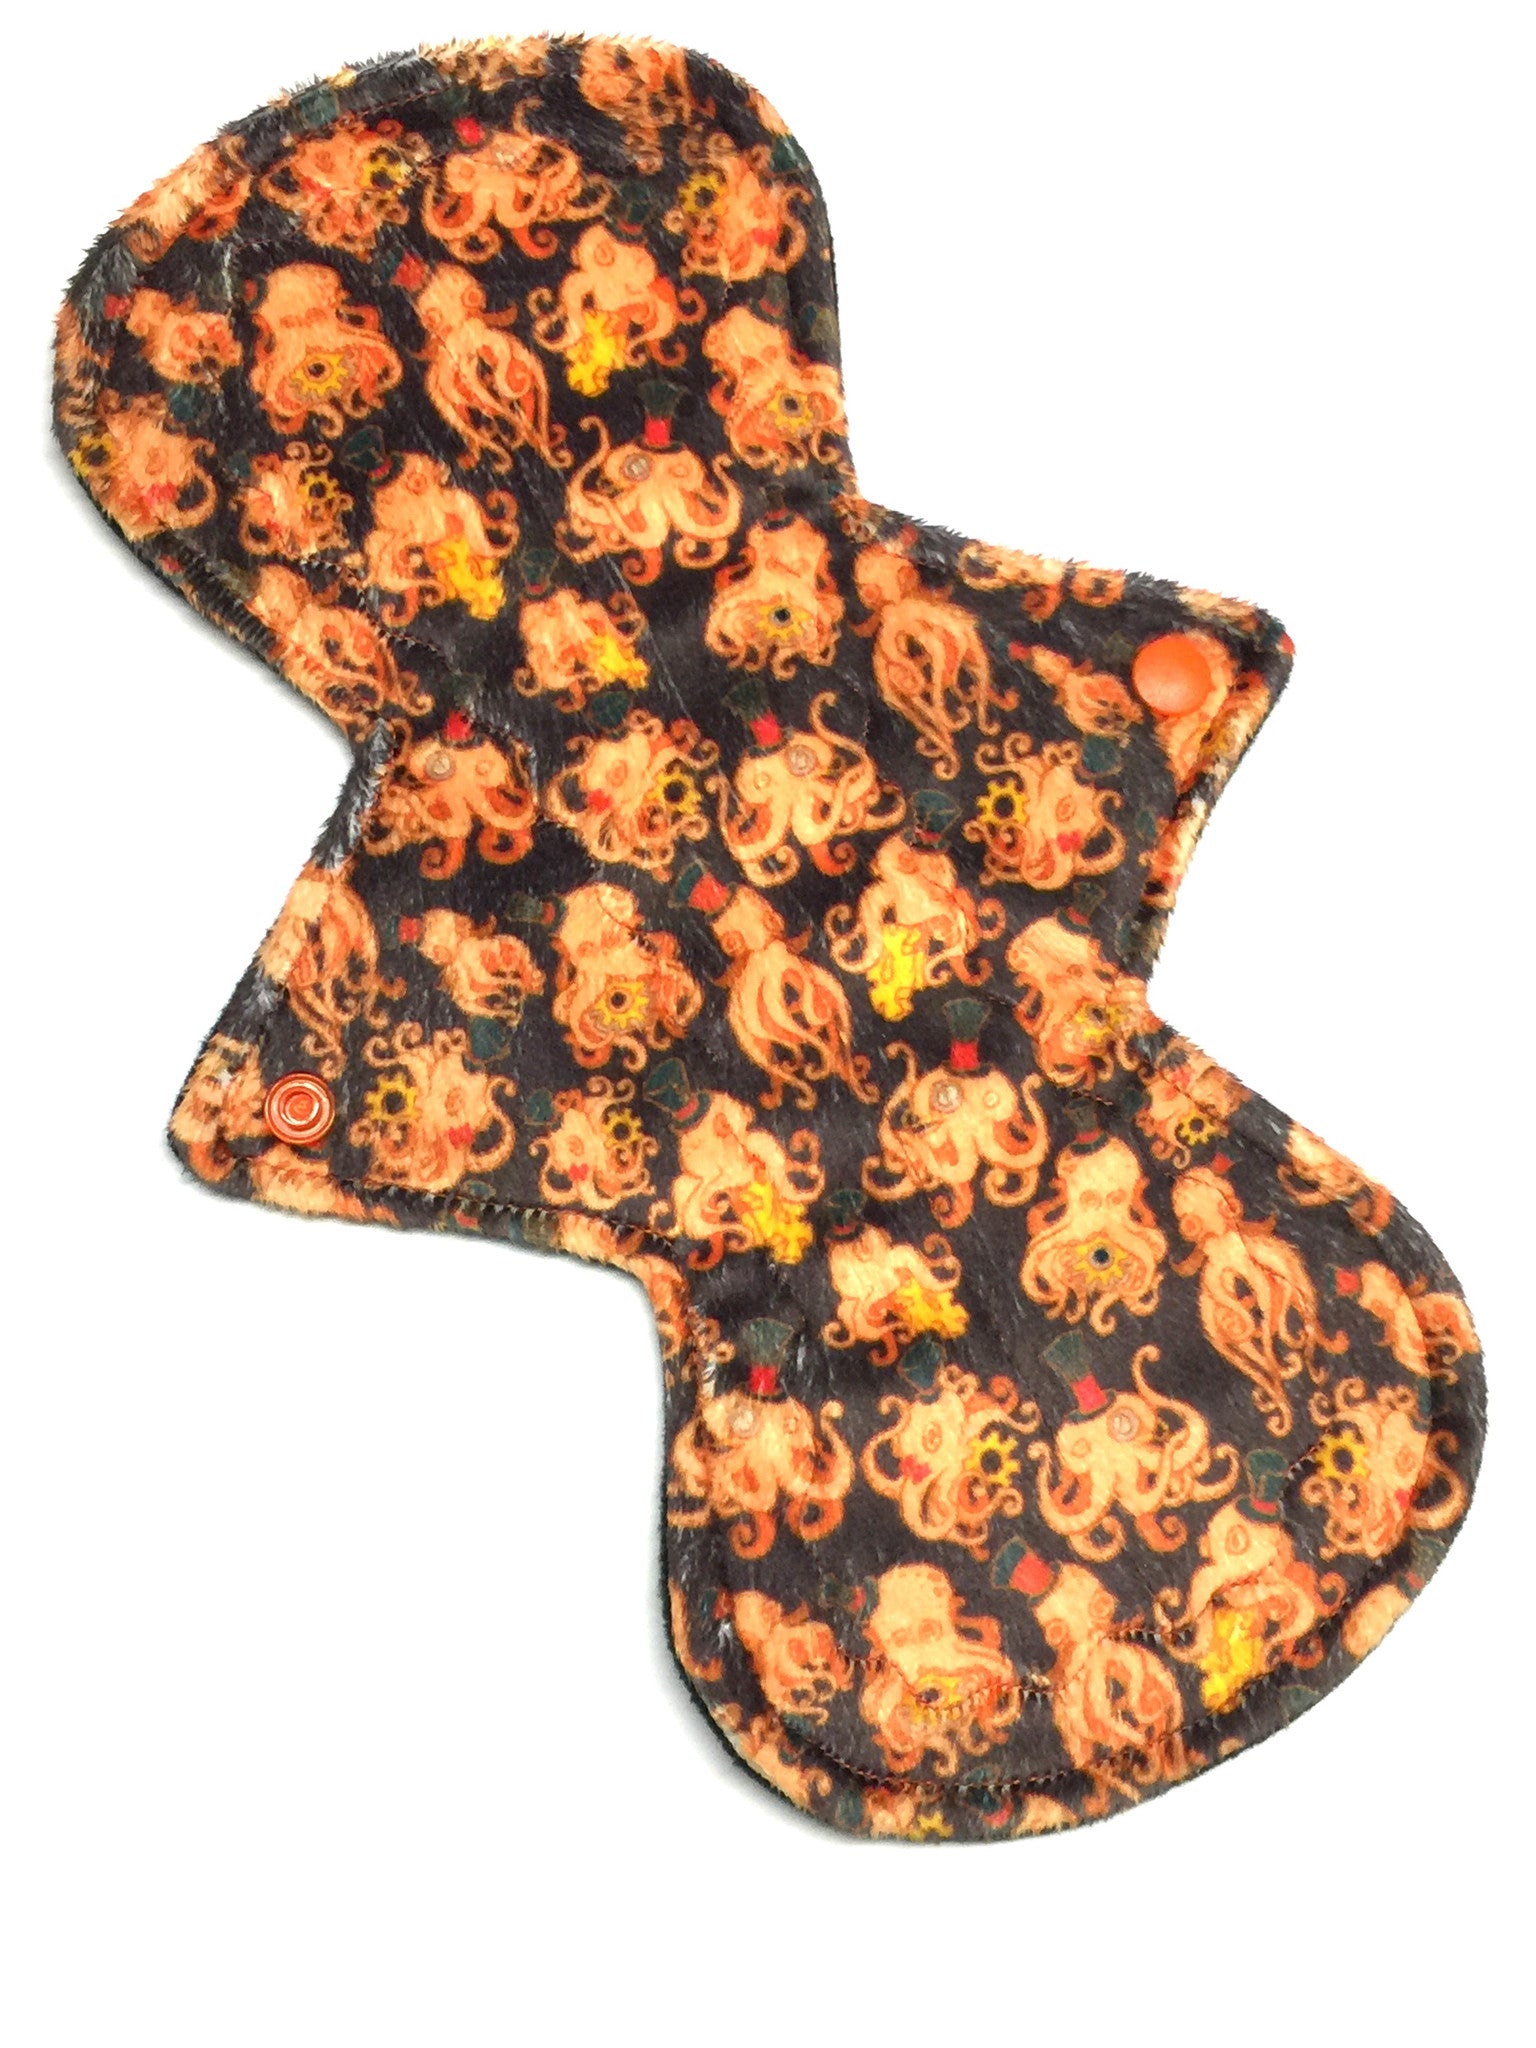 11 Inch Curve Style NINJA (moderate-heavy) Absorbency Specialty Print Minky Topped Pad in Steampunk Octopus